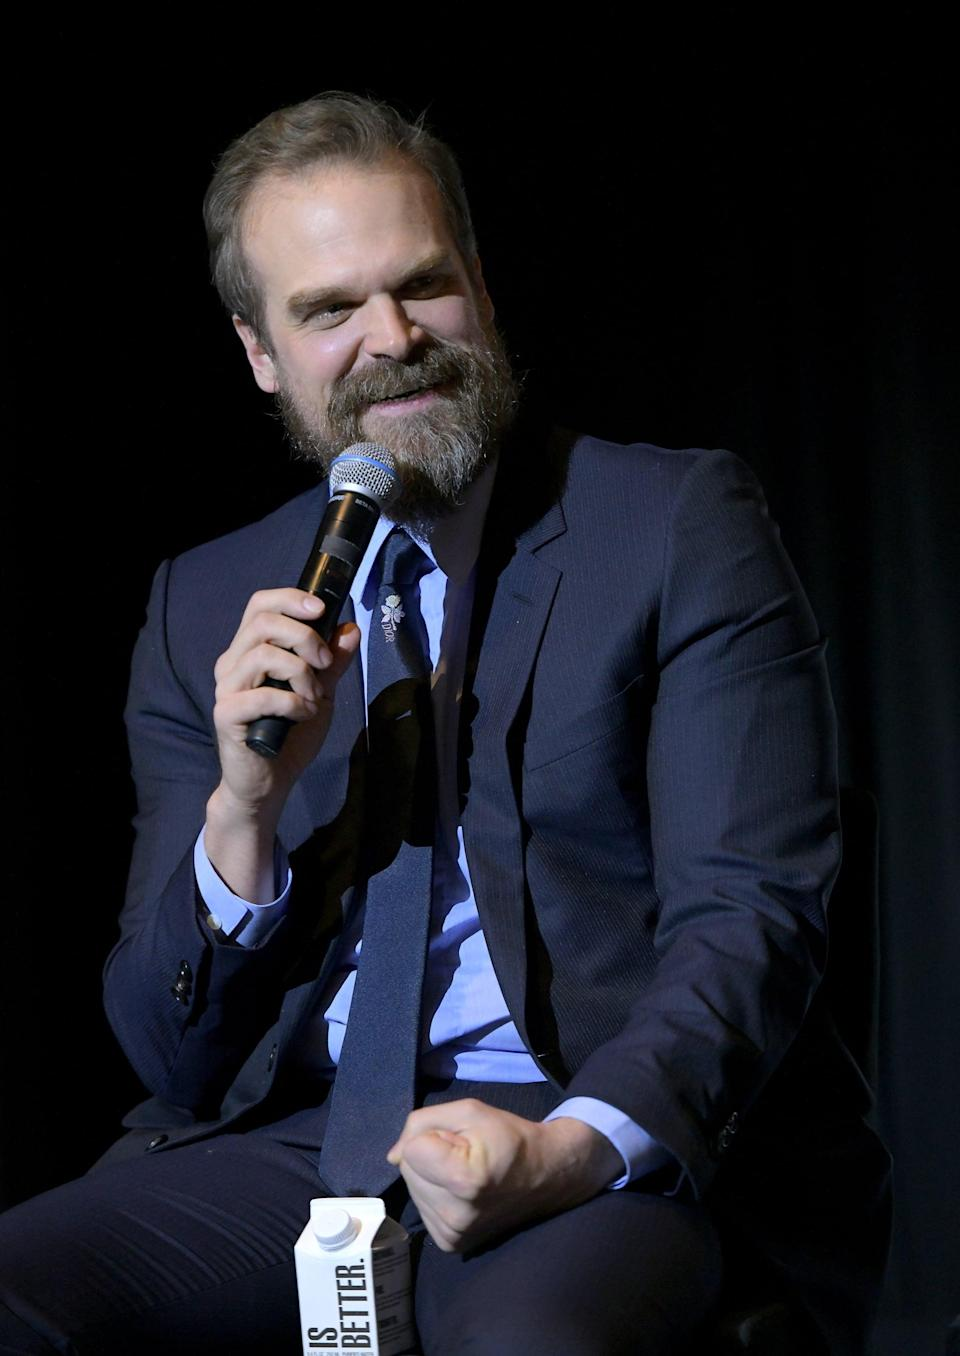 <p>Harbour will return as the grumpy but lovable sheriff Hopper, who's a prisoner in Russia despite being seemingly sucked into a dimensional wormhole at the end of season three.</p>